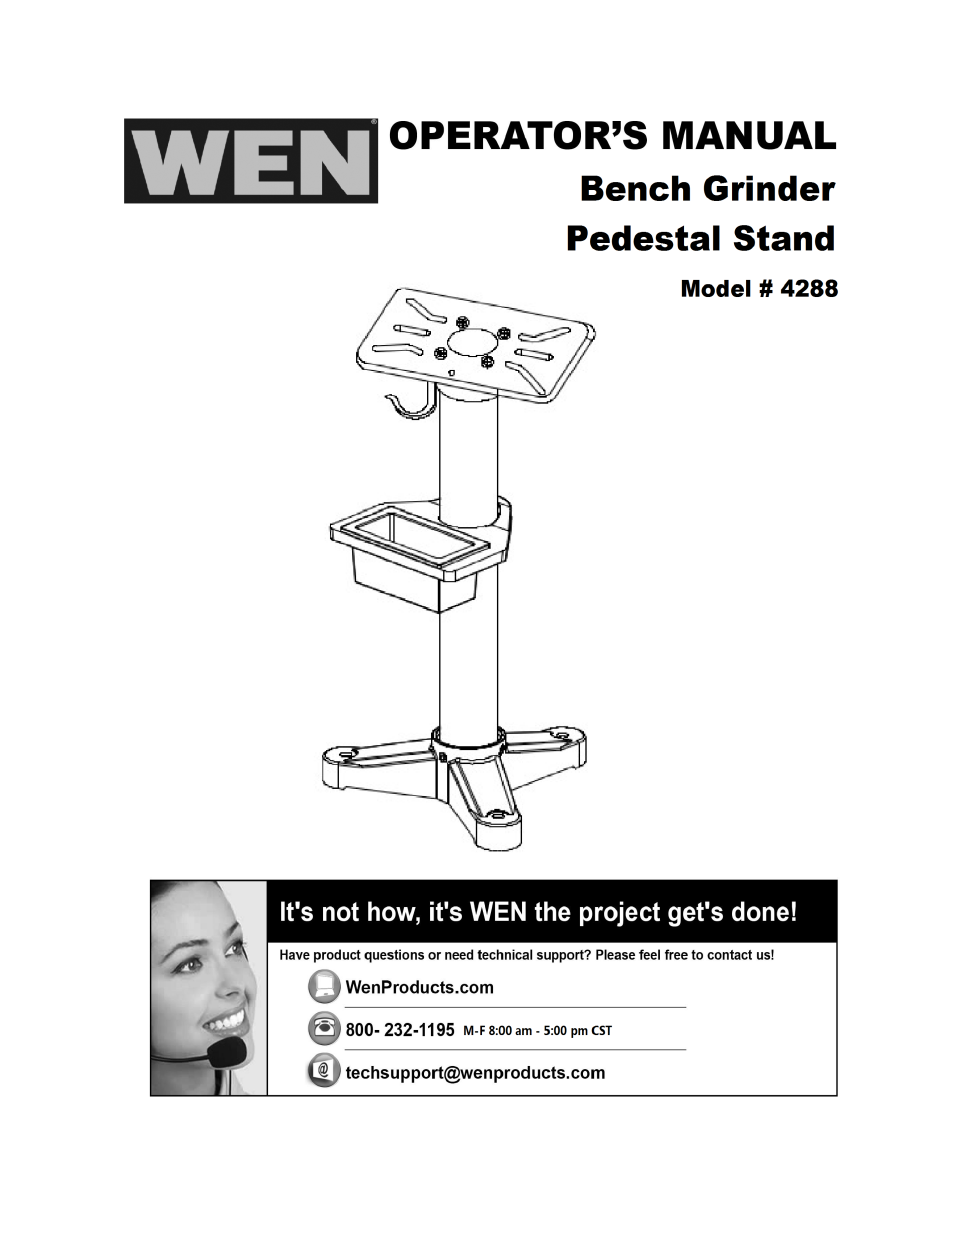 Incredible Wen 4288 Bench Grinder Pedestal Stand User Manual 4 Pages Machost Co Dining Chair Design Ideas Machostcouk